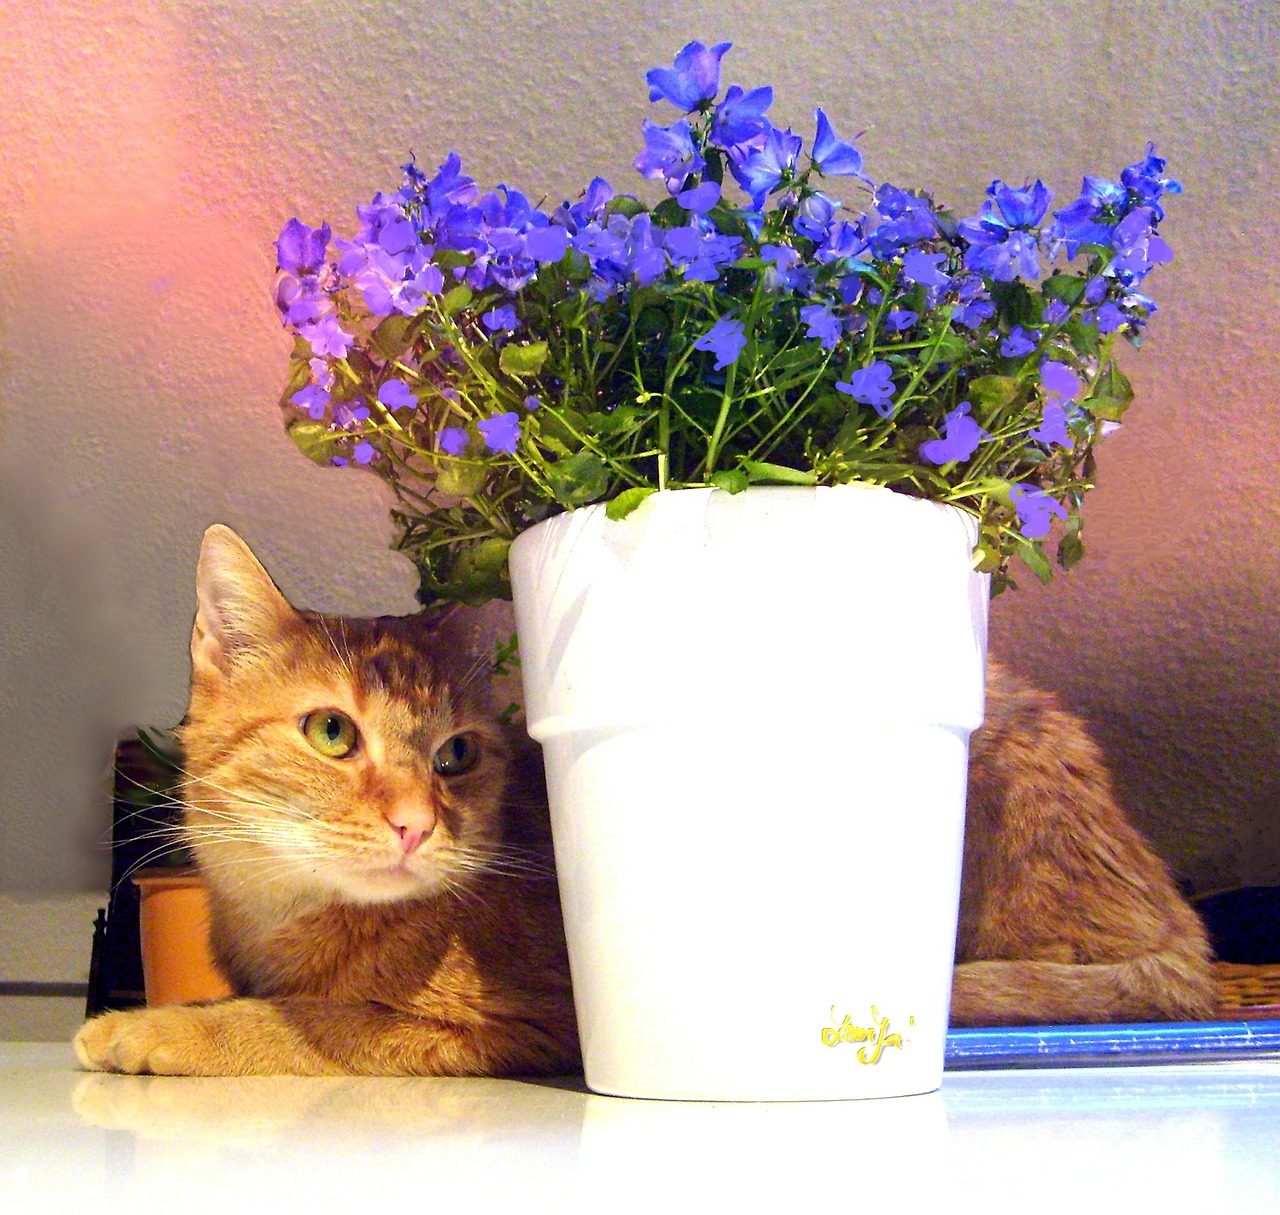 Know Your Dangers: Common Household Plants are Poisonous for Cats